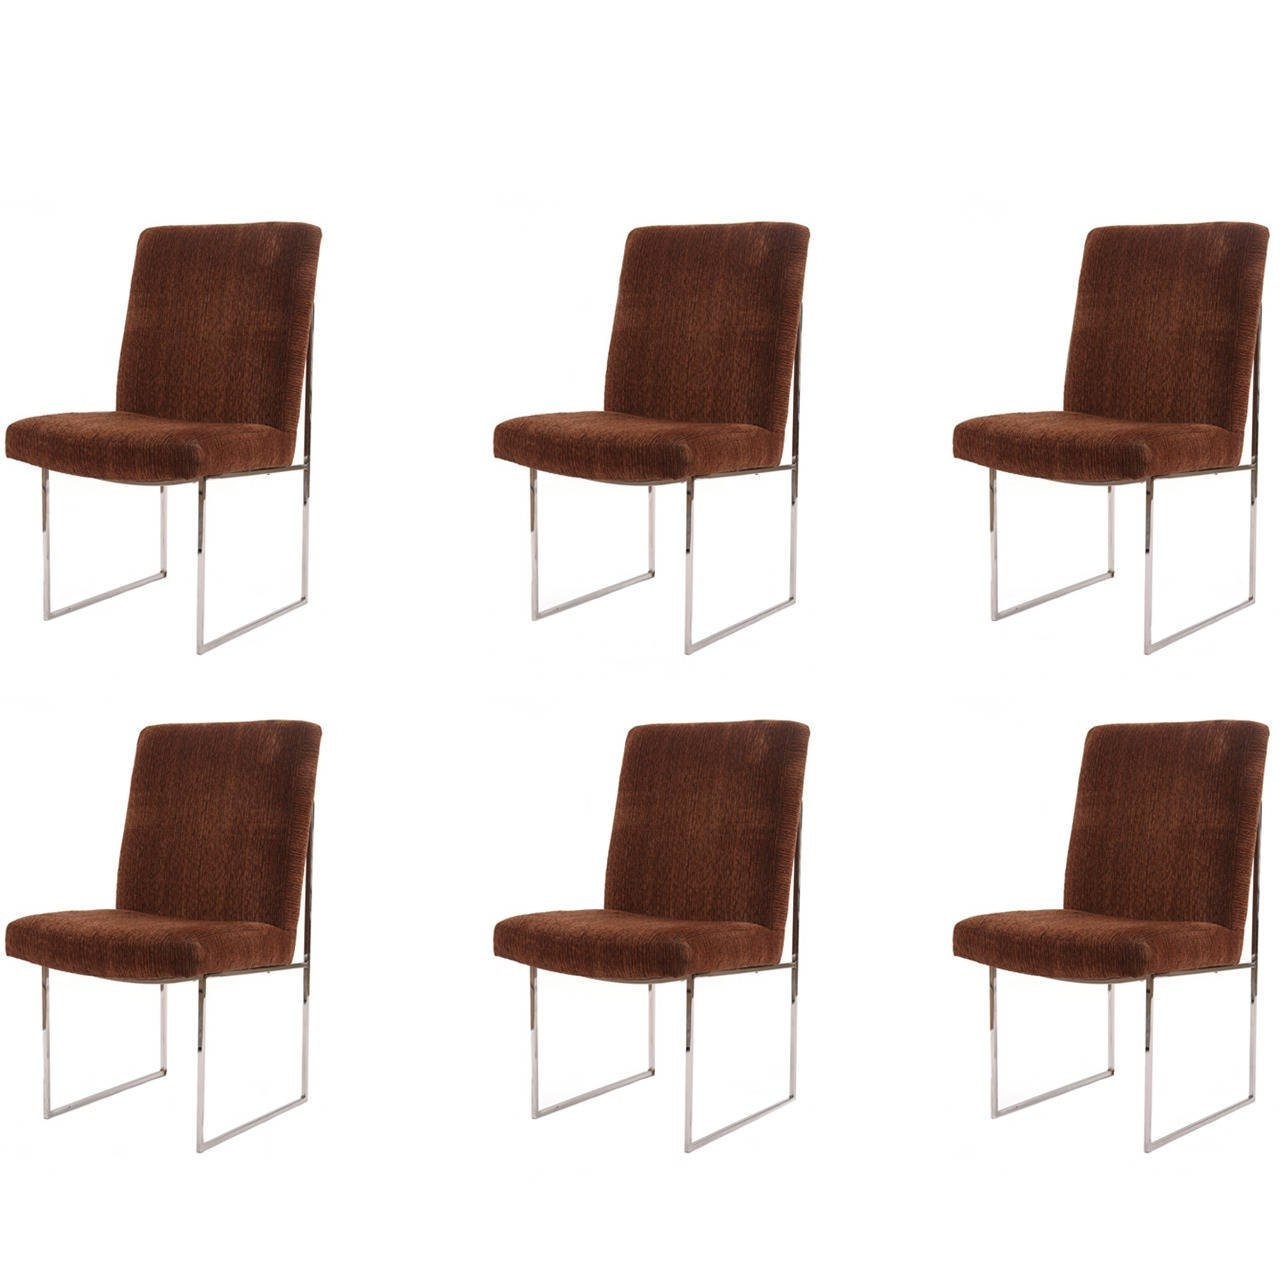 2018 Milo Baughman Thayer Coggin Chrome And Upholstered Dining Chairs With Regard To Chrome Dining Chairs (Gallery 8 of 25)